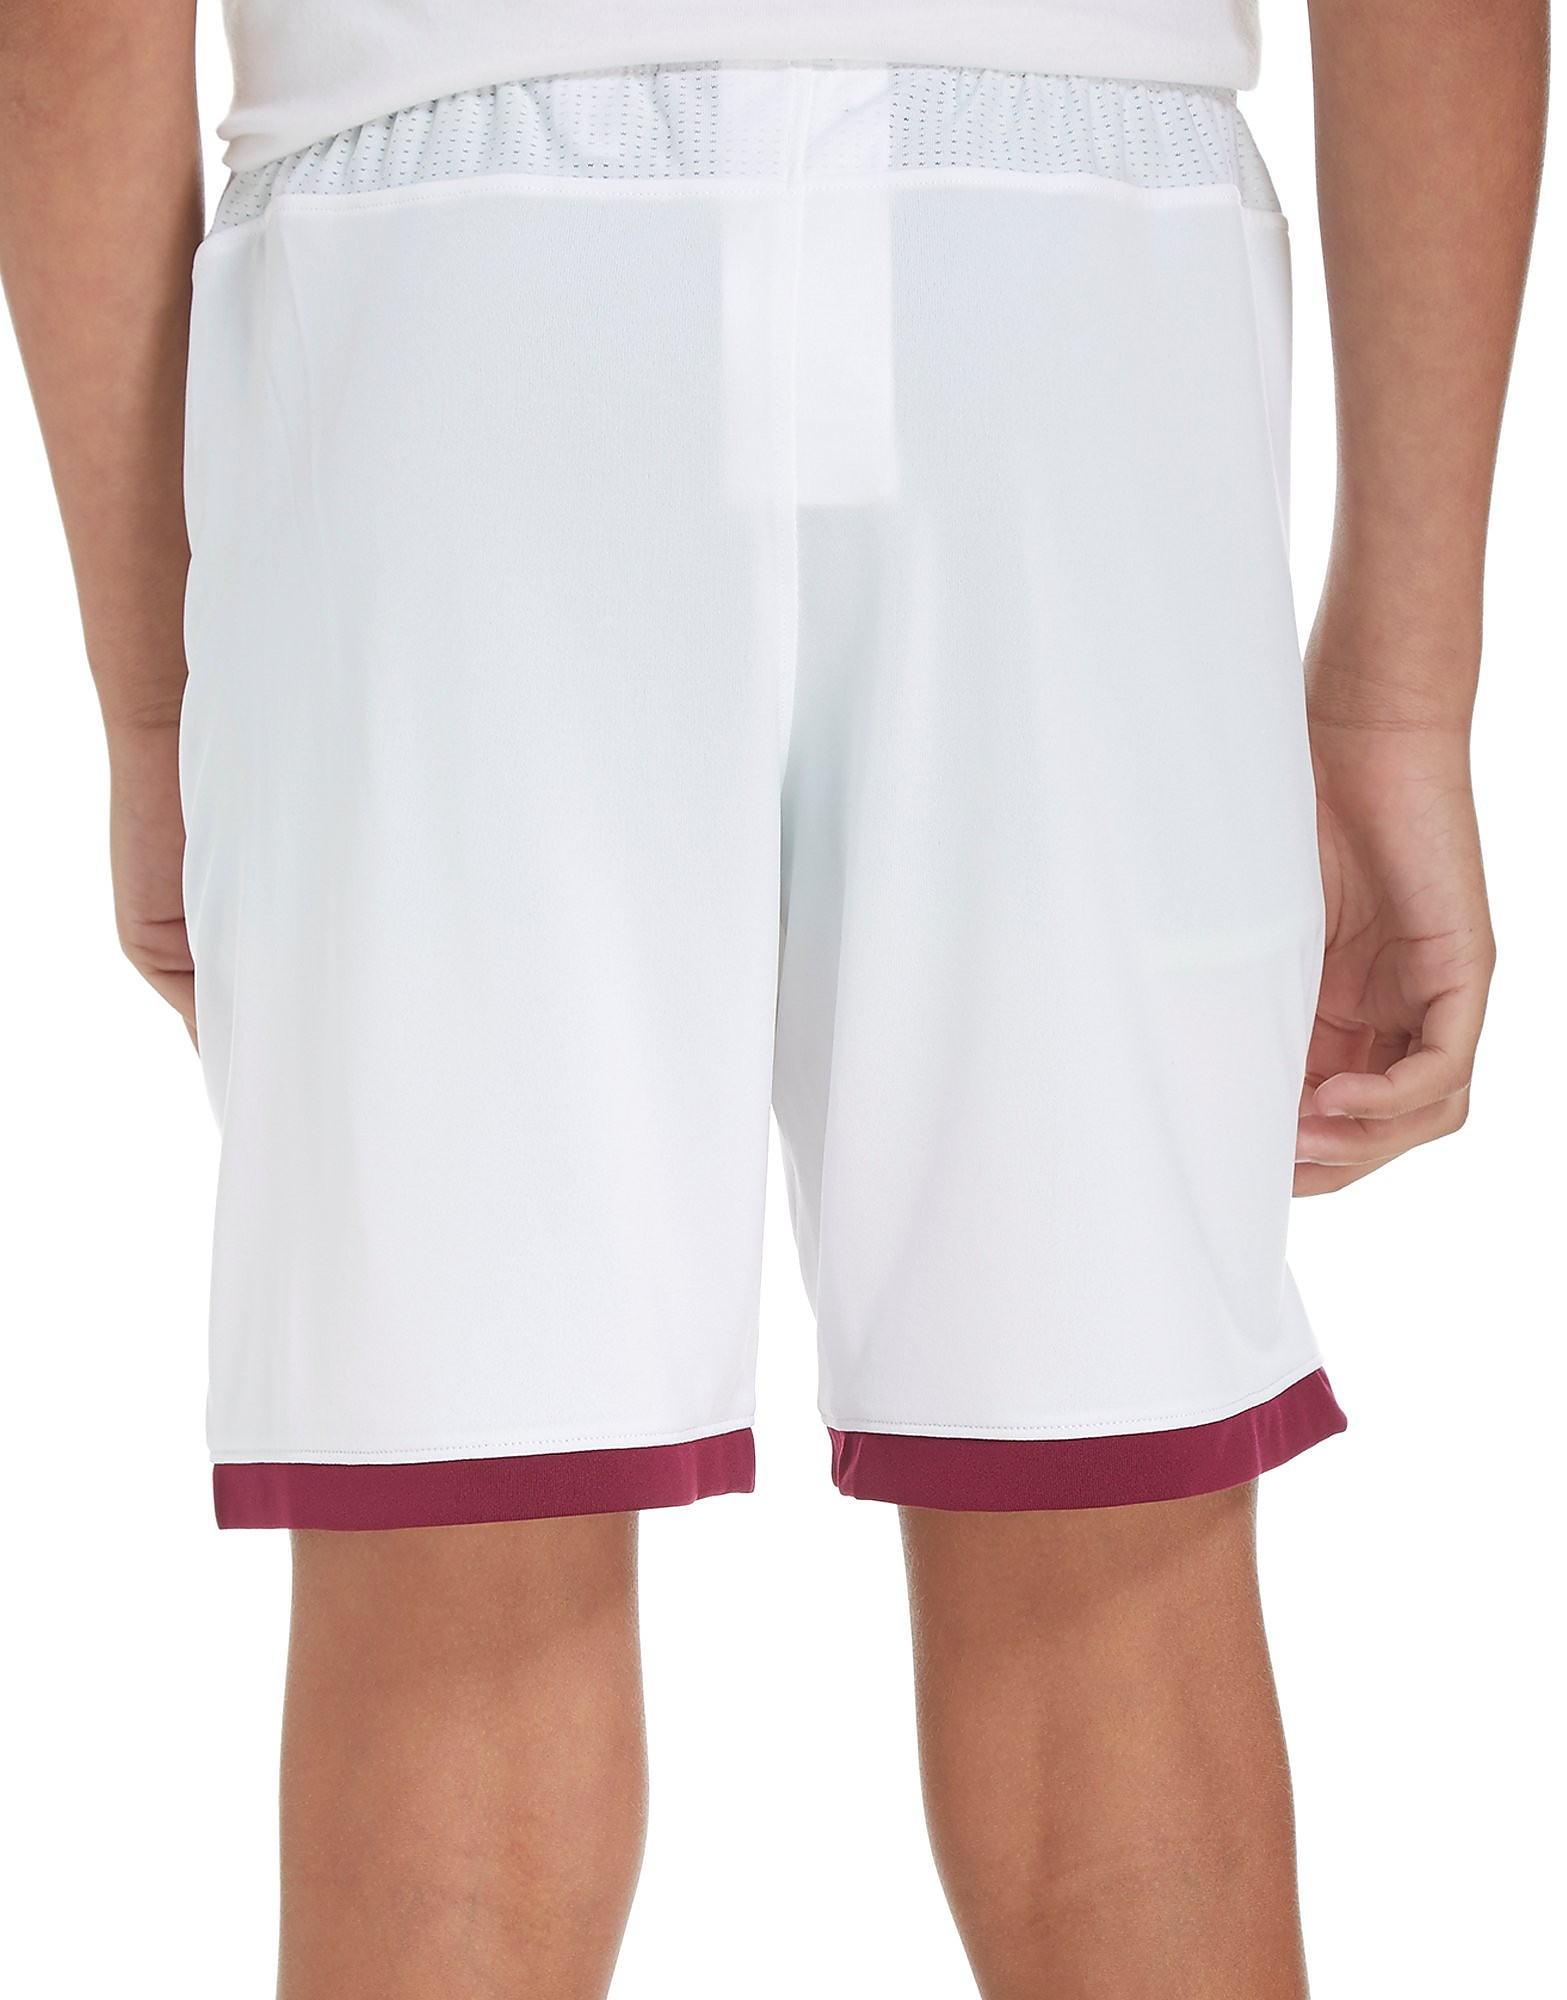 Under Armour Aston Villa FC 2017/18 Home Shorts